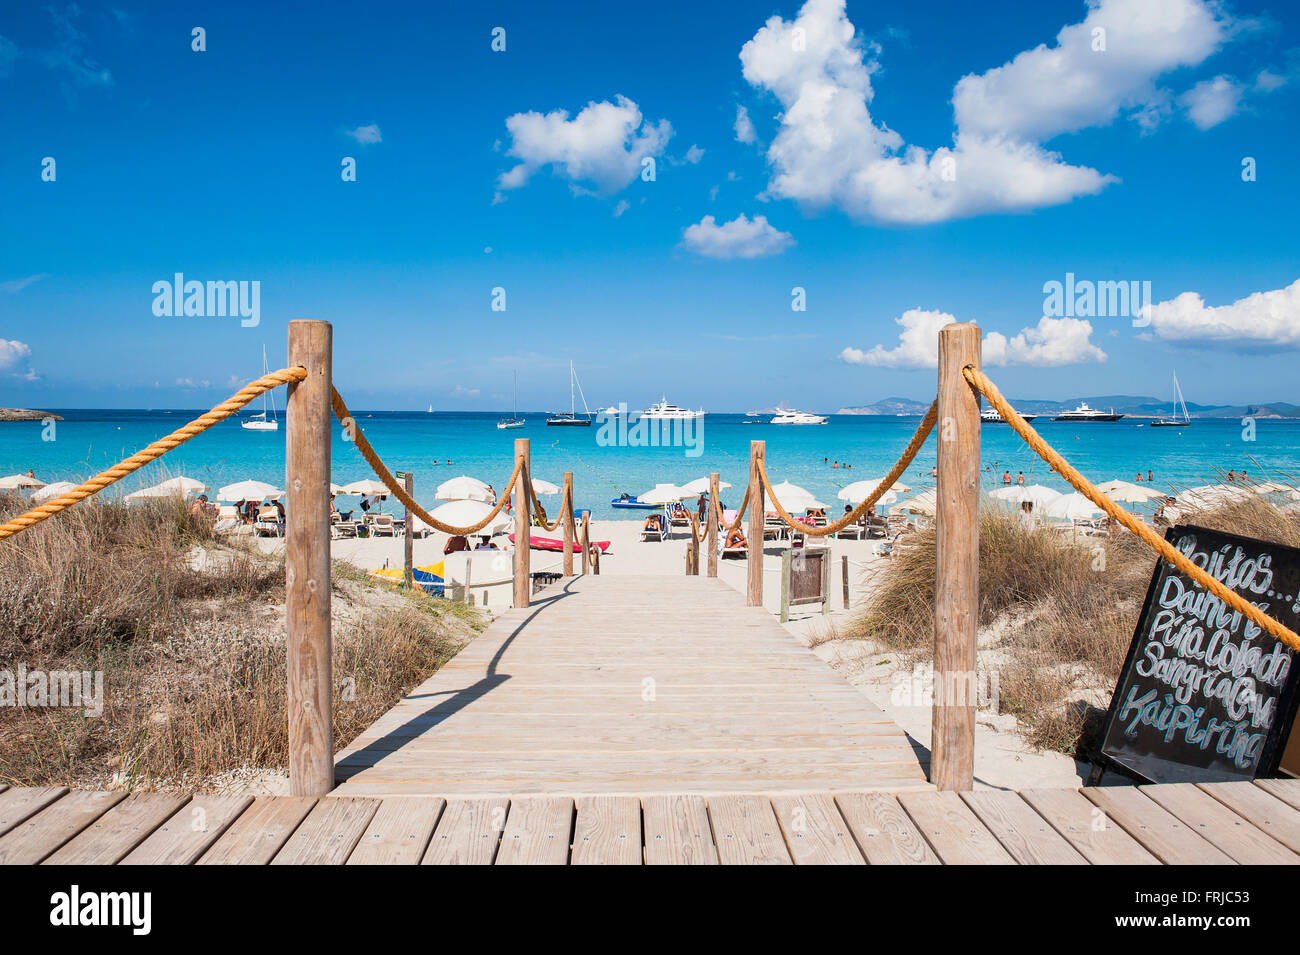 Formentera, Balearic Island, Spain. A picture postcard image of the Ses Illetes beach with its magical colors caribbean. - Stock Image